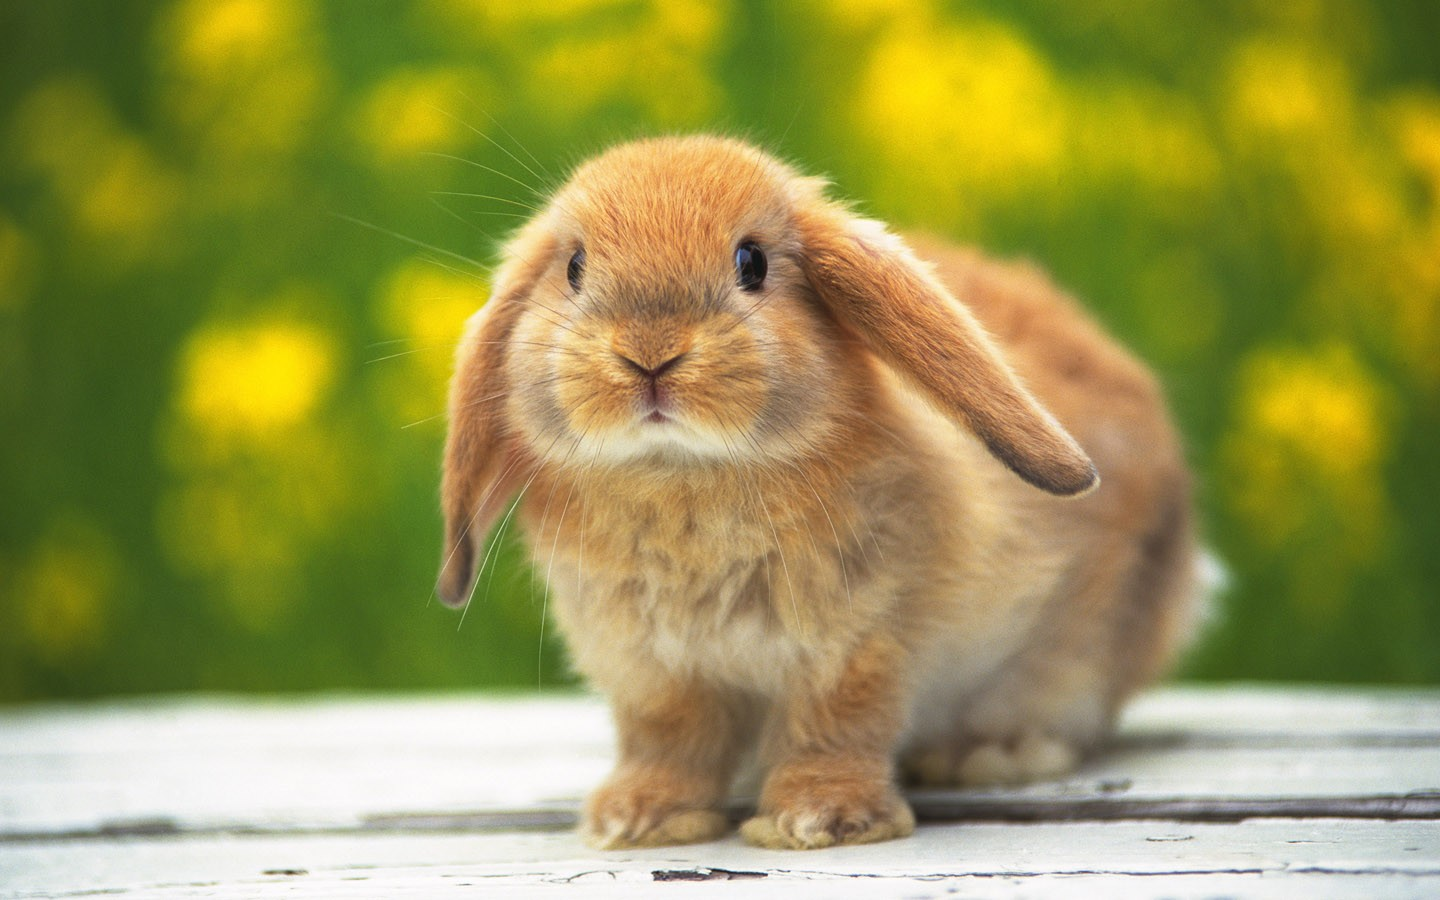 Cute Rabbit hd Wallpapers 2013